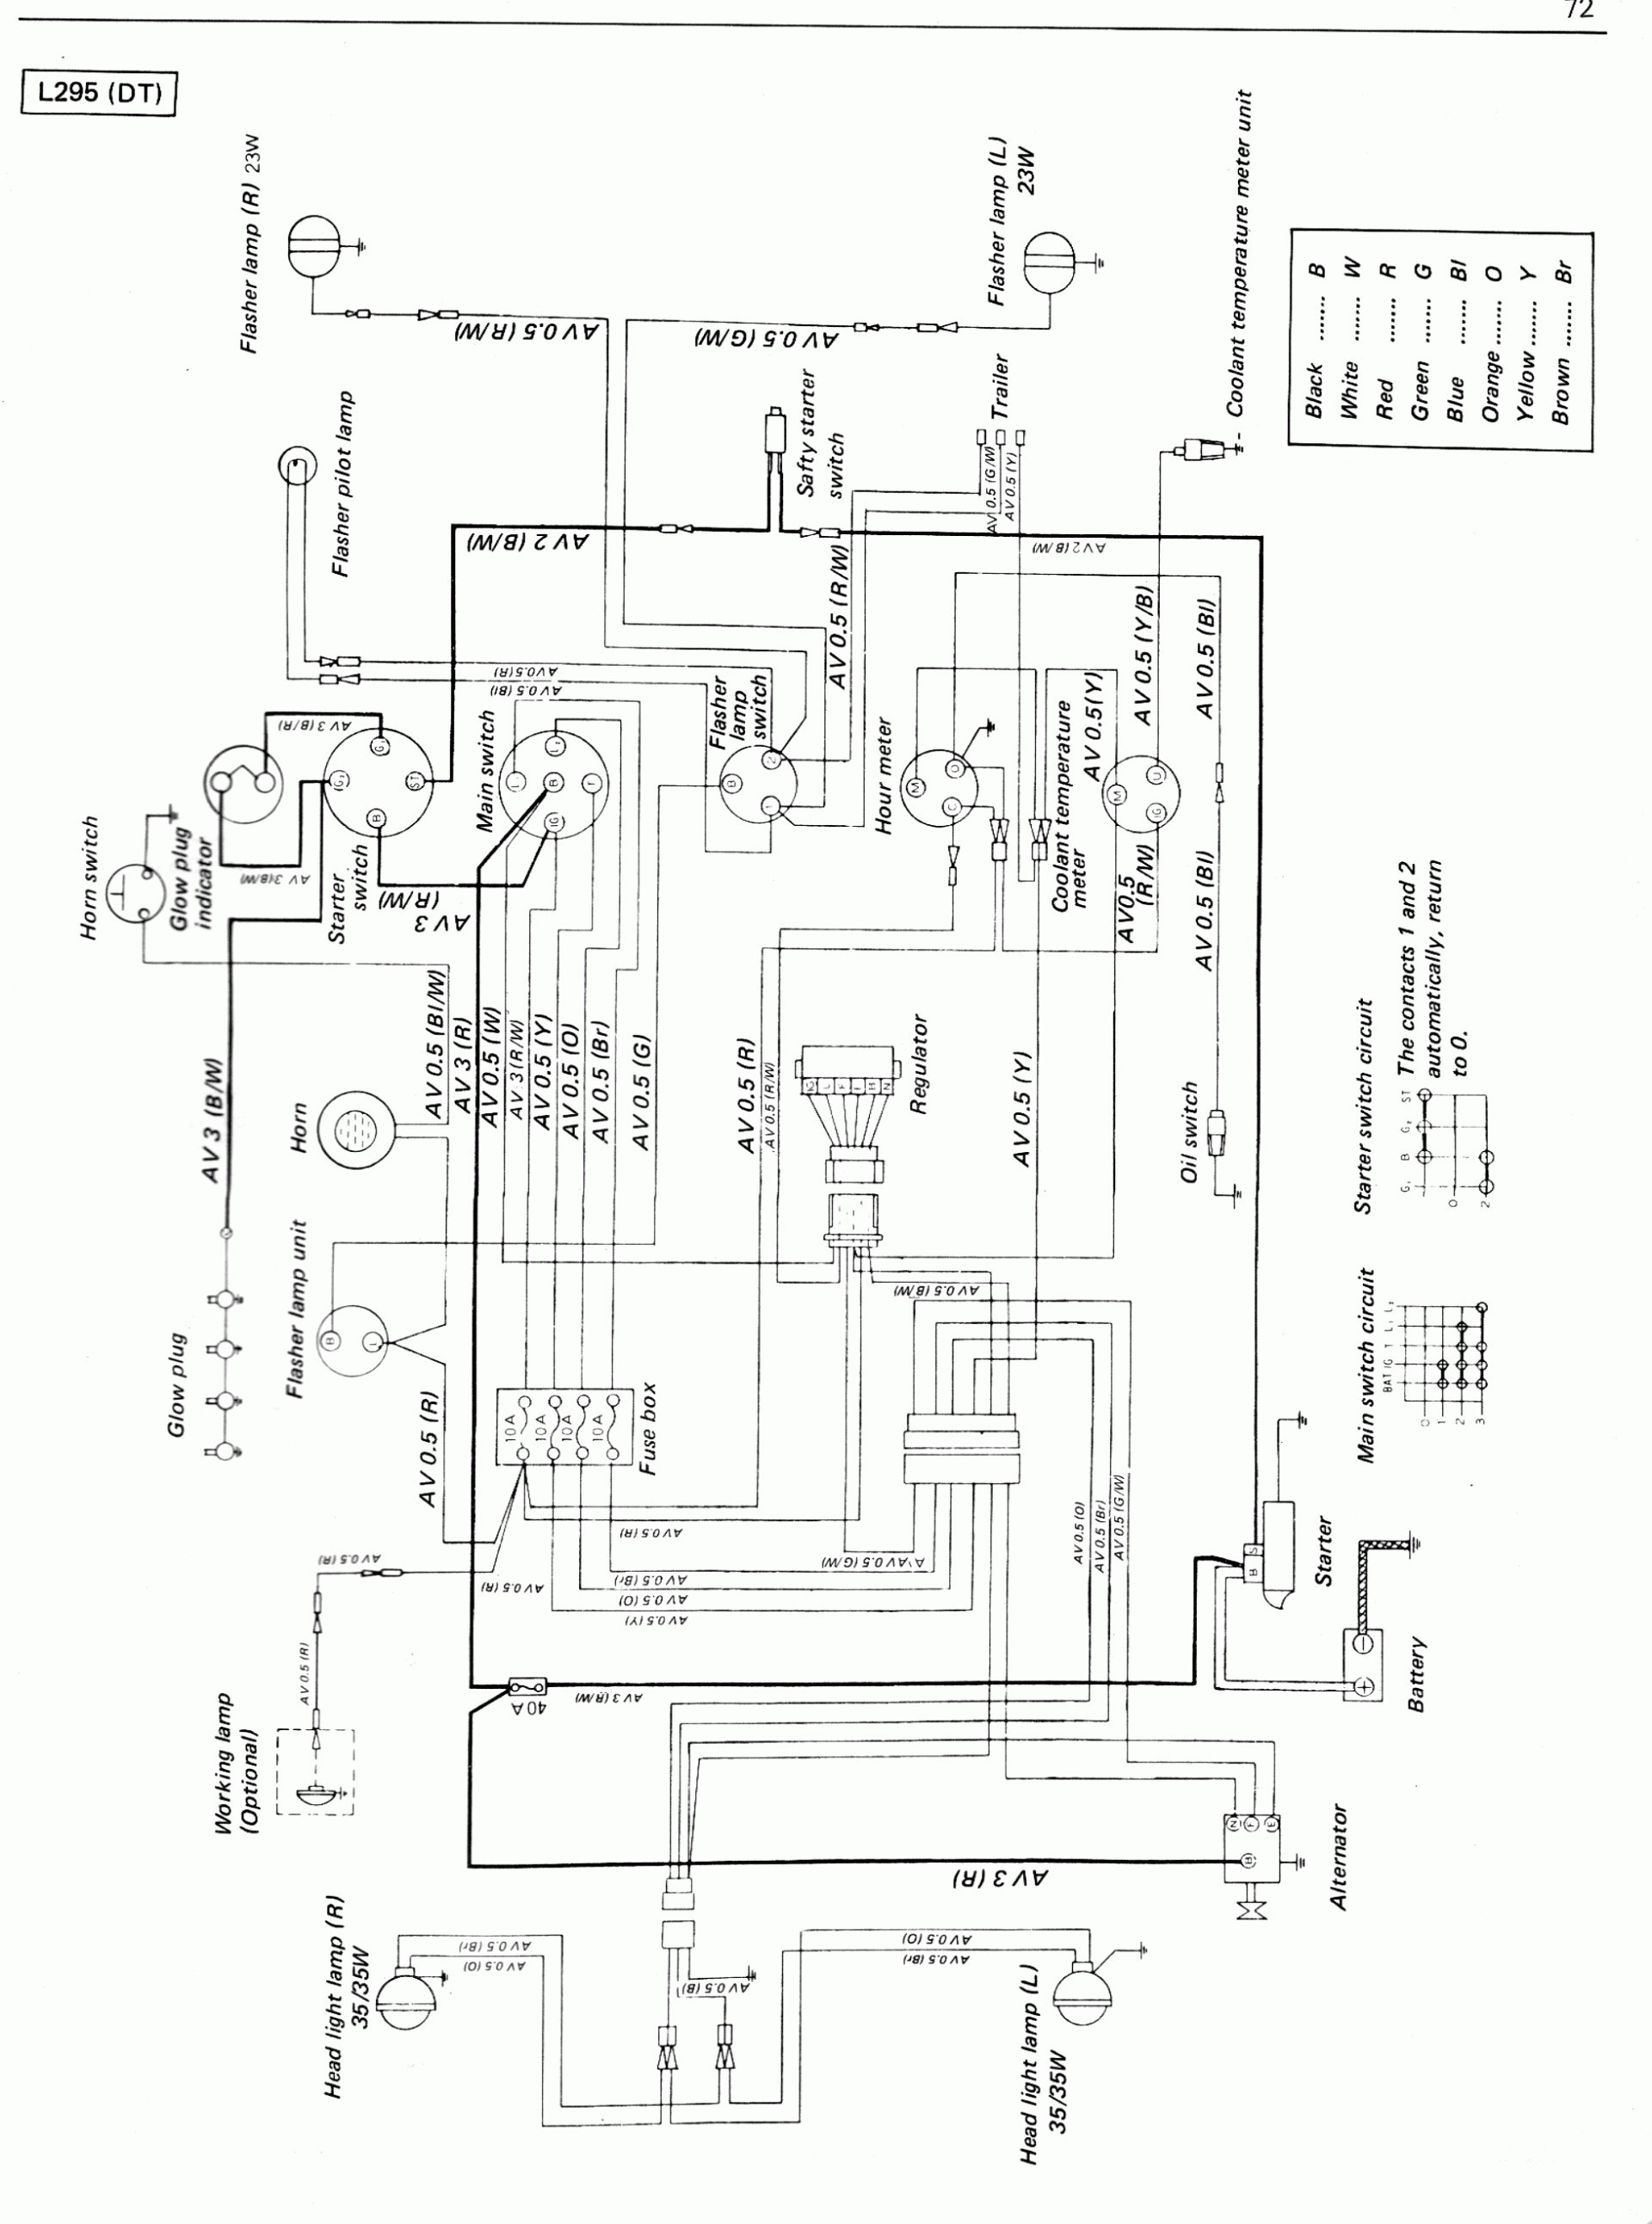 Case Switch Diagram